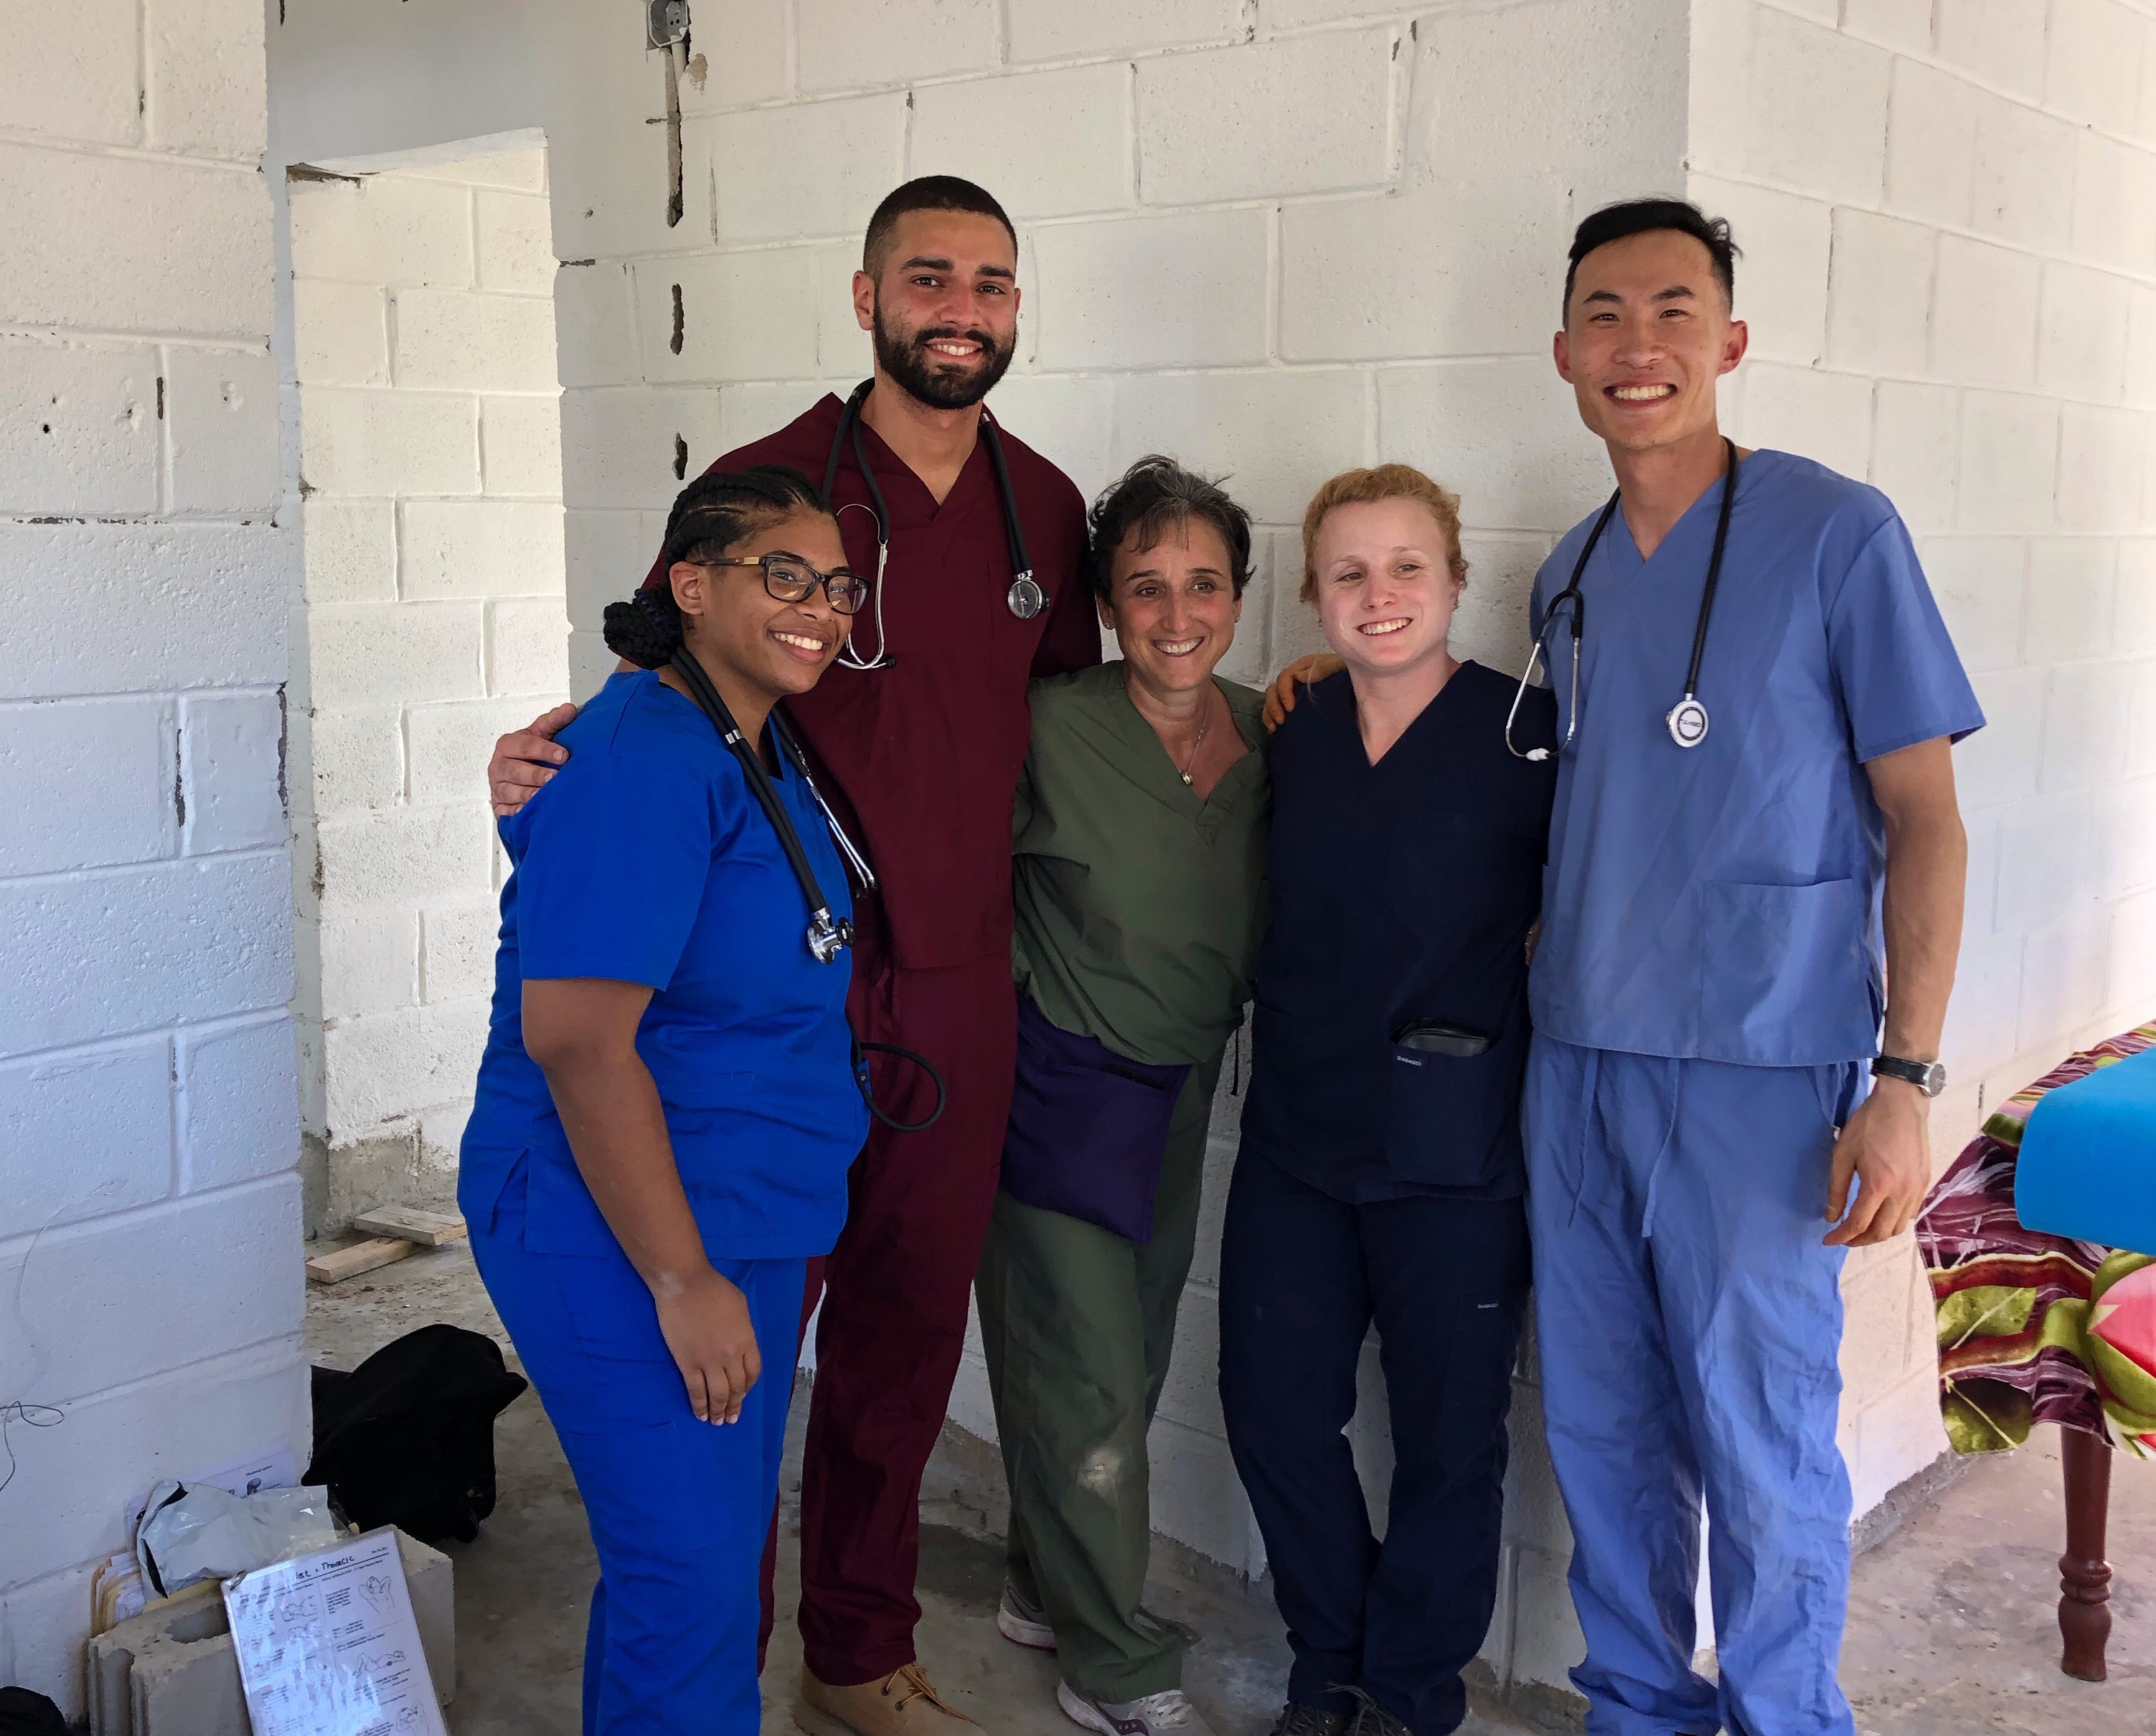 DPT students on service learning trip to the Dominican Republic